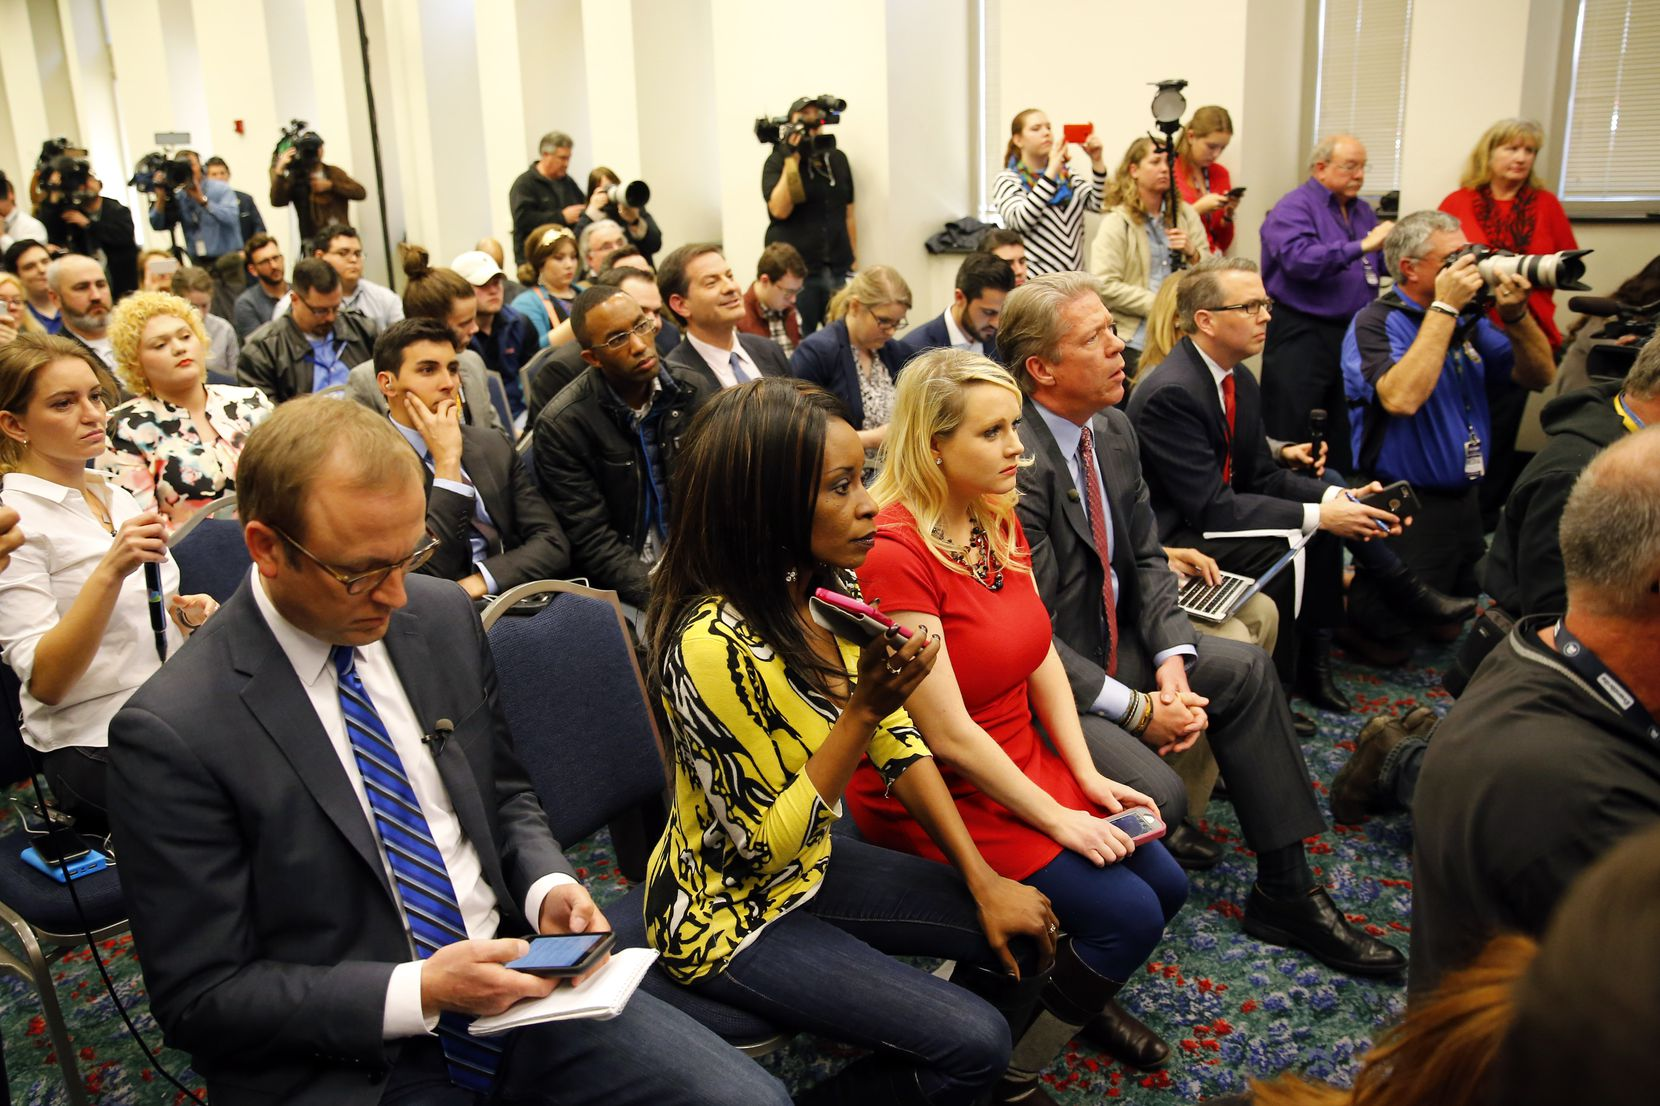 KLIF radio show host Nicole Barrett (second from right in yellow top) asked a question of Republican presidential candidate Donald J. Trump about the endorsement of former Grand Wizard of the Ku Klux Klan David Duke during a press conference at the Fort Worth Convention Center in downtown Fort Worth, Friday, February 26, 2016. She was the first to inform Trump of the endorsement. Trump is campaigning in Texas ahead of the Super Tuesday elections next week.